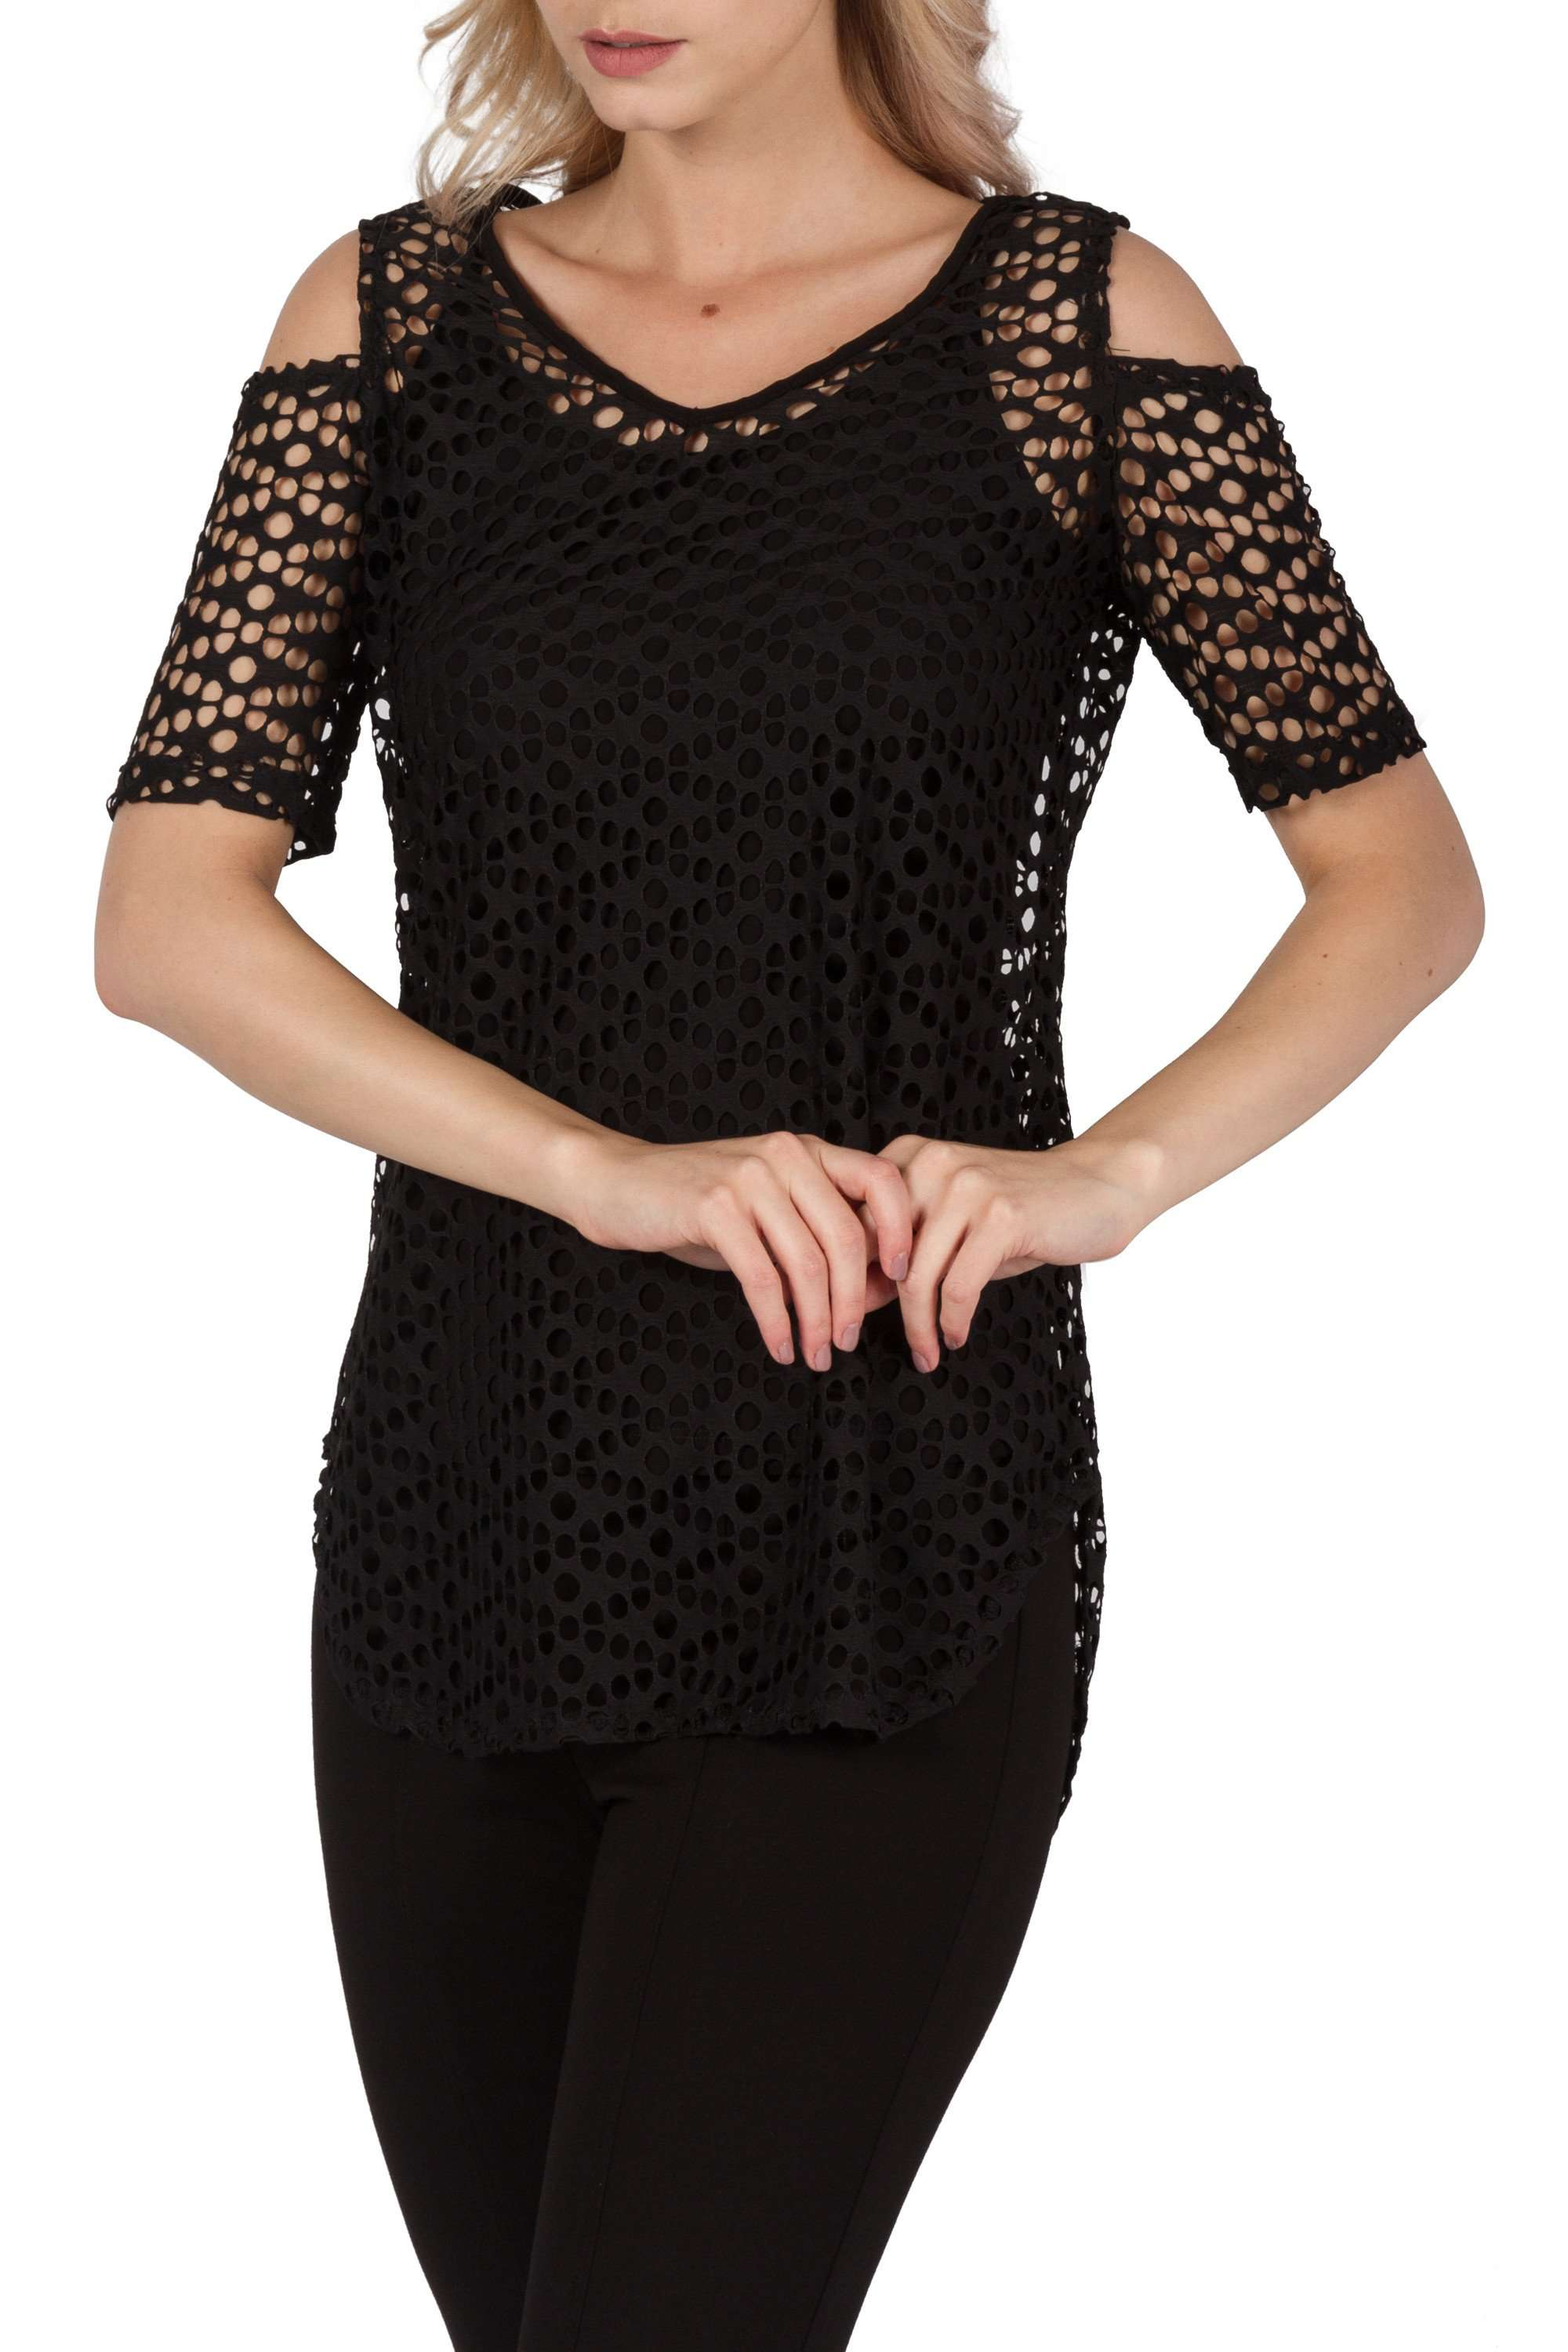 07eeb678fa9b9d Black Mesh Cold Shoulder Top Enhance All Your Black Bottoms with One  Mysterious Top